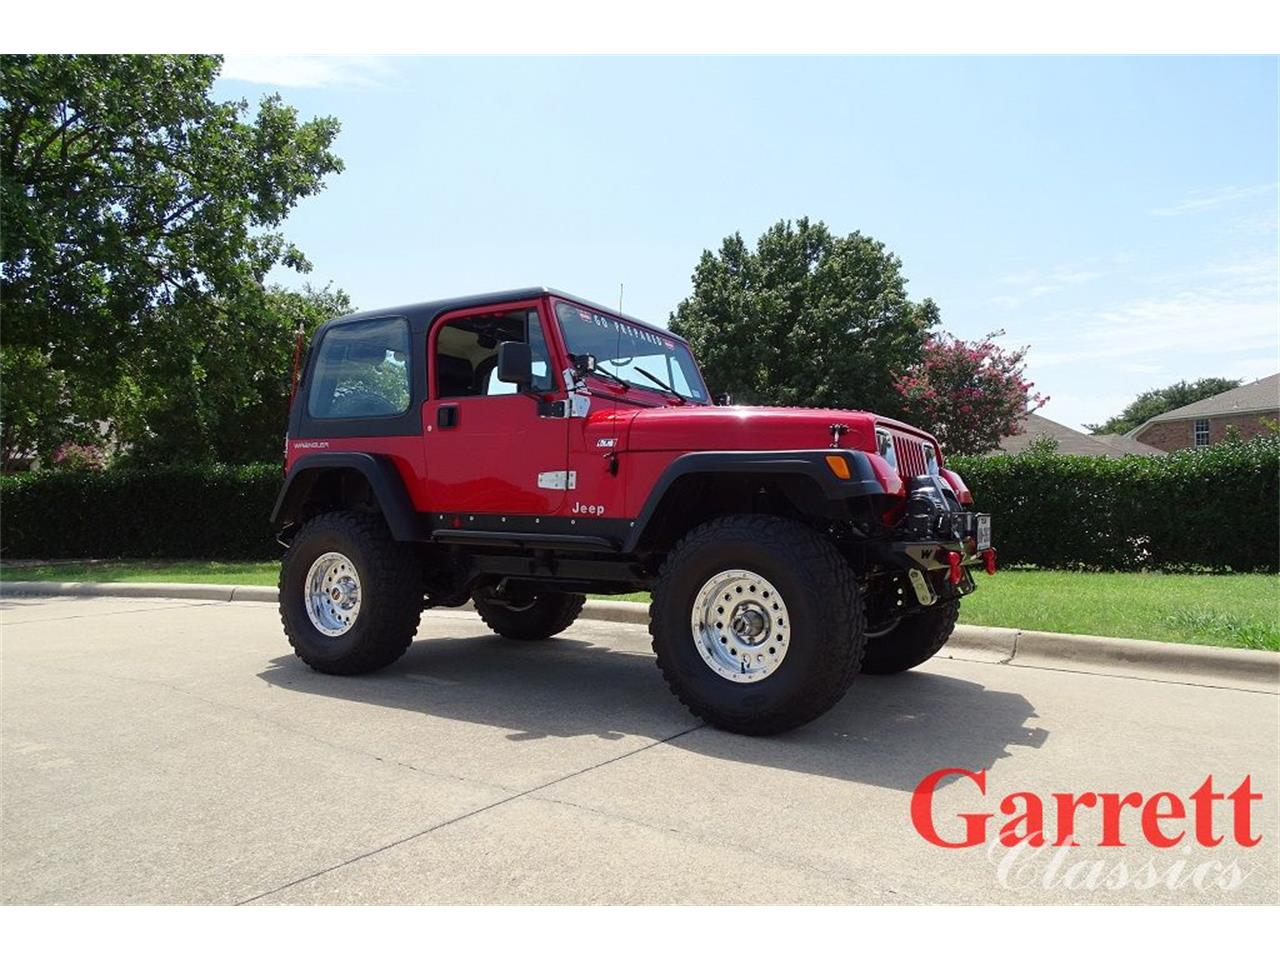 1995 Jeep Wrangler (CC-1365978) for sale in Lewisville, TEXAS (TX)